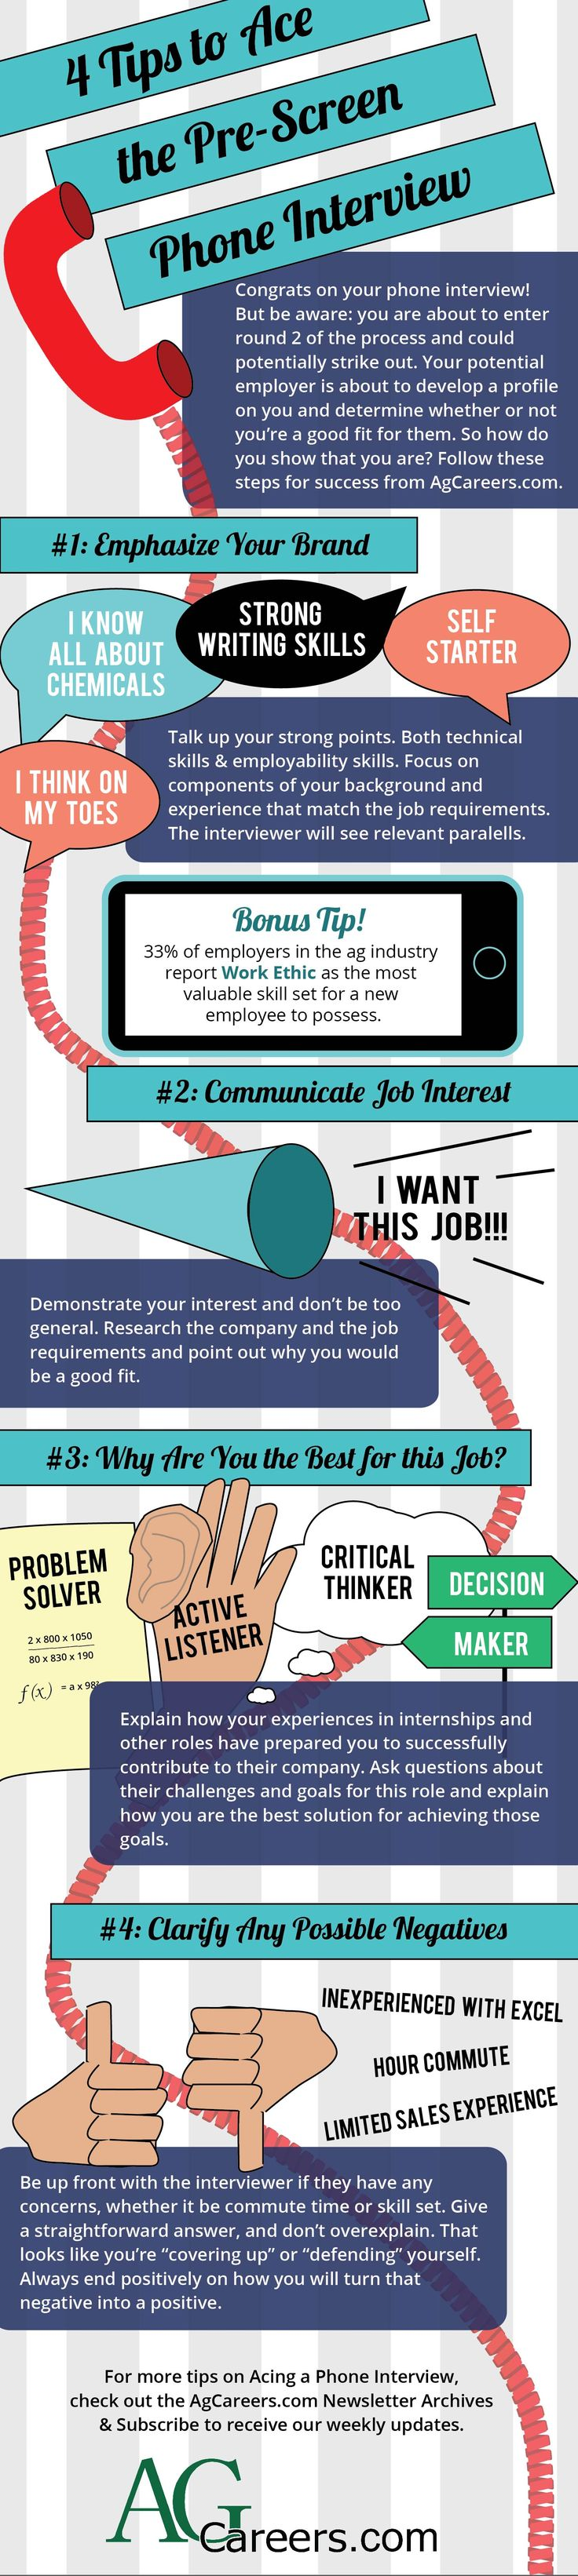 22 best images about leadership and professional ethics on